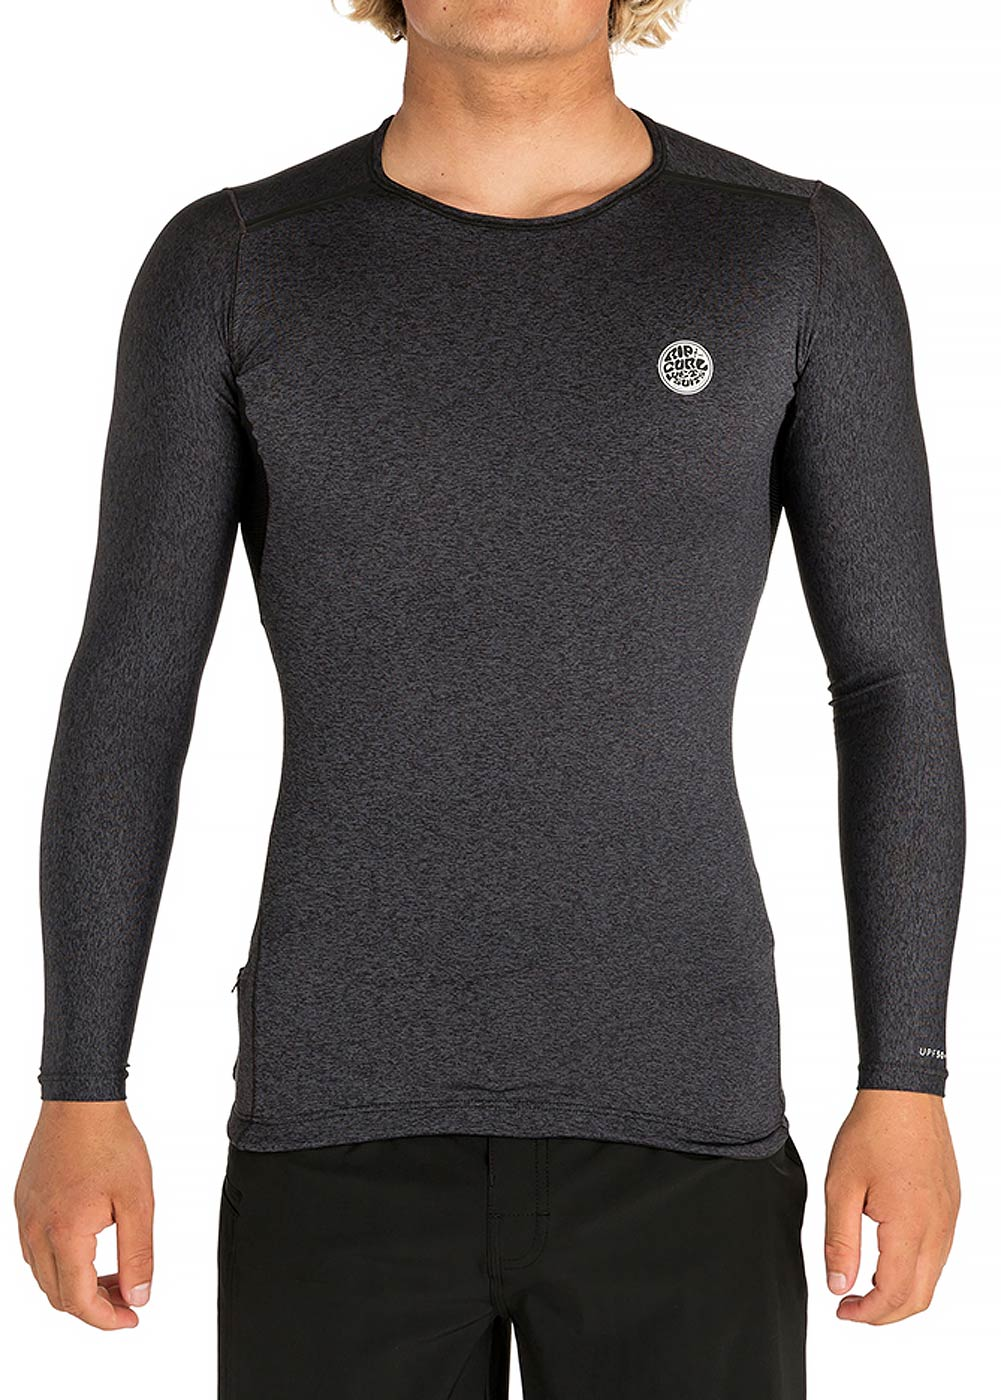 Rip Curl Mens Tech Bomb L/S Rash Guard